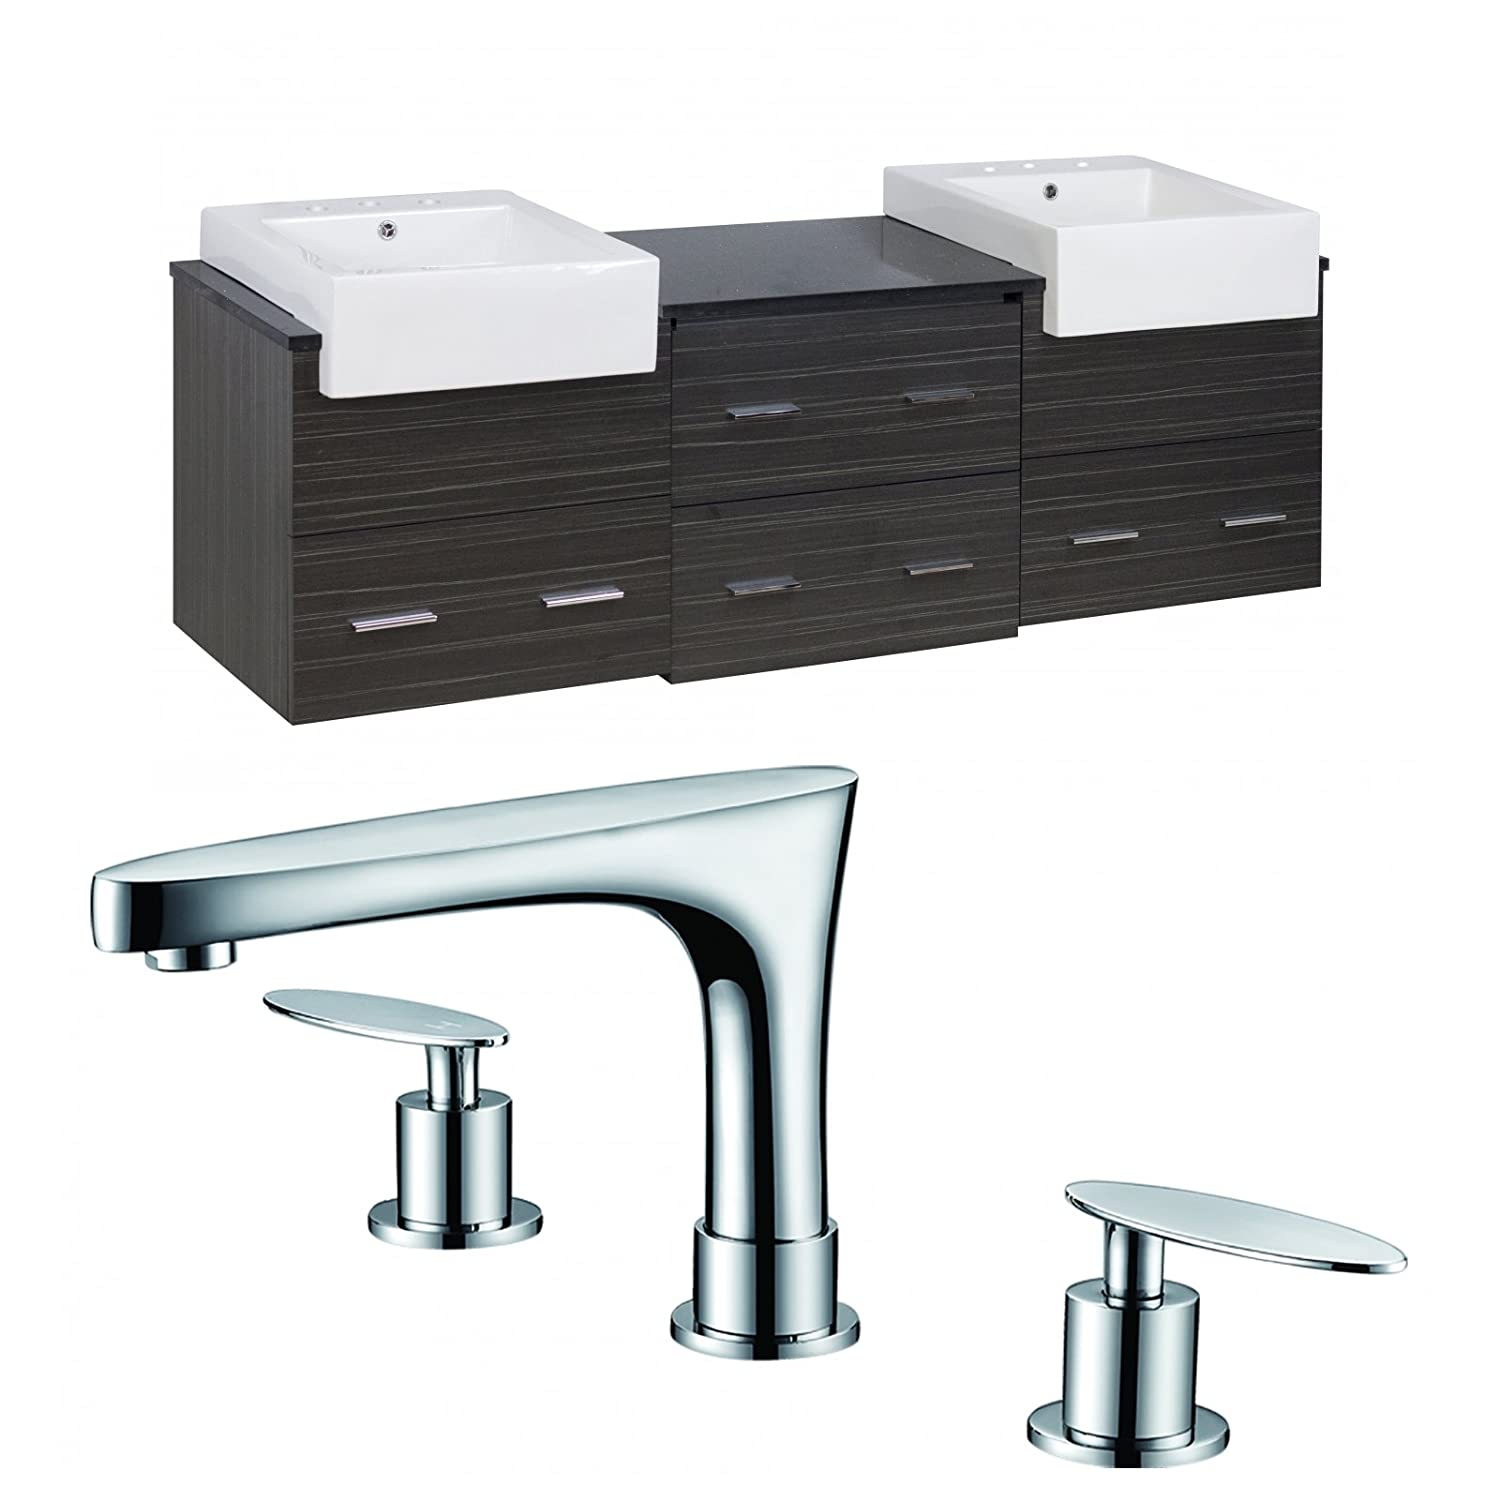 17.5-in. W x 17.5-in. D Above Counter Square Vessel In White Color For Single Hole Faucet IMG Imports Inc. AI-105-57